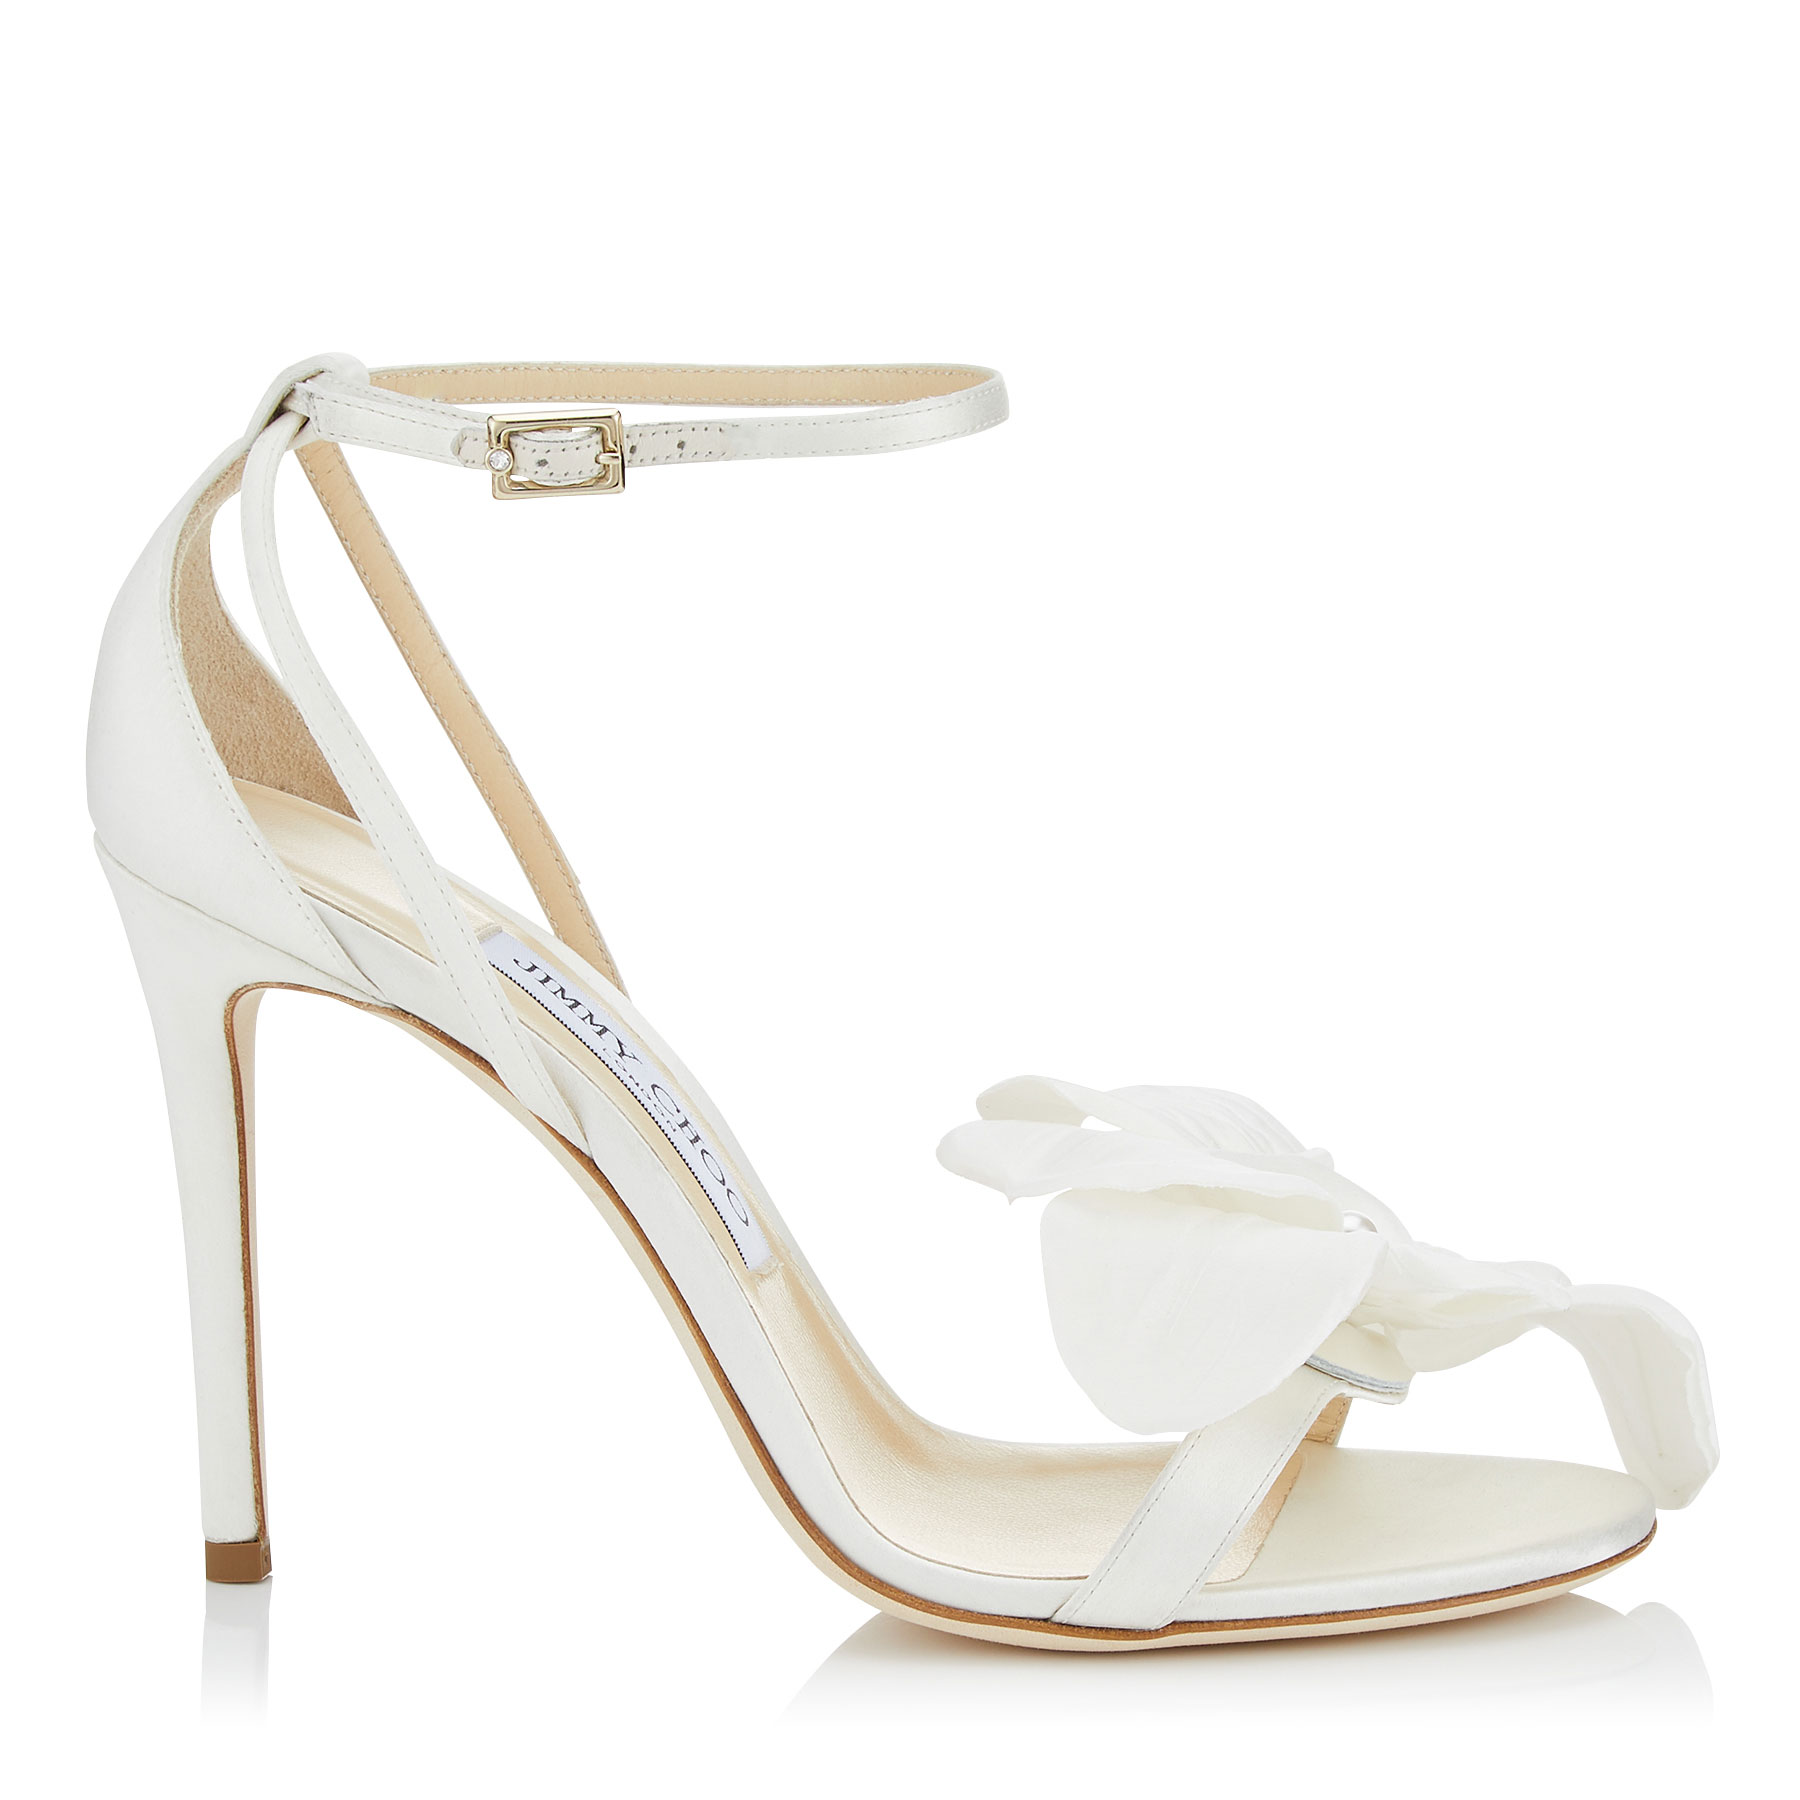 AURELIA 100 Ivory Satin Sandals with Orchid by Jimmy Choo